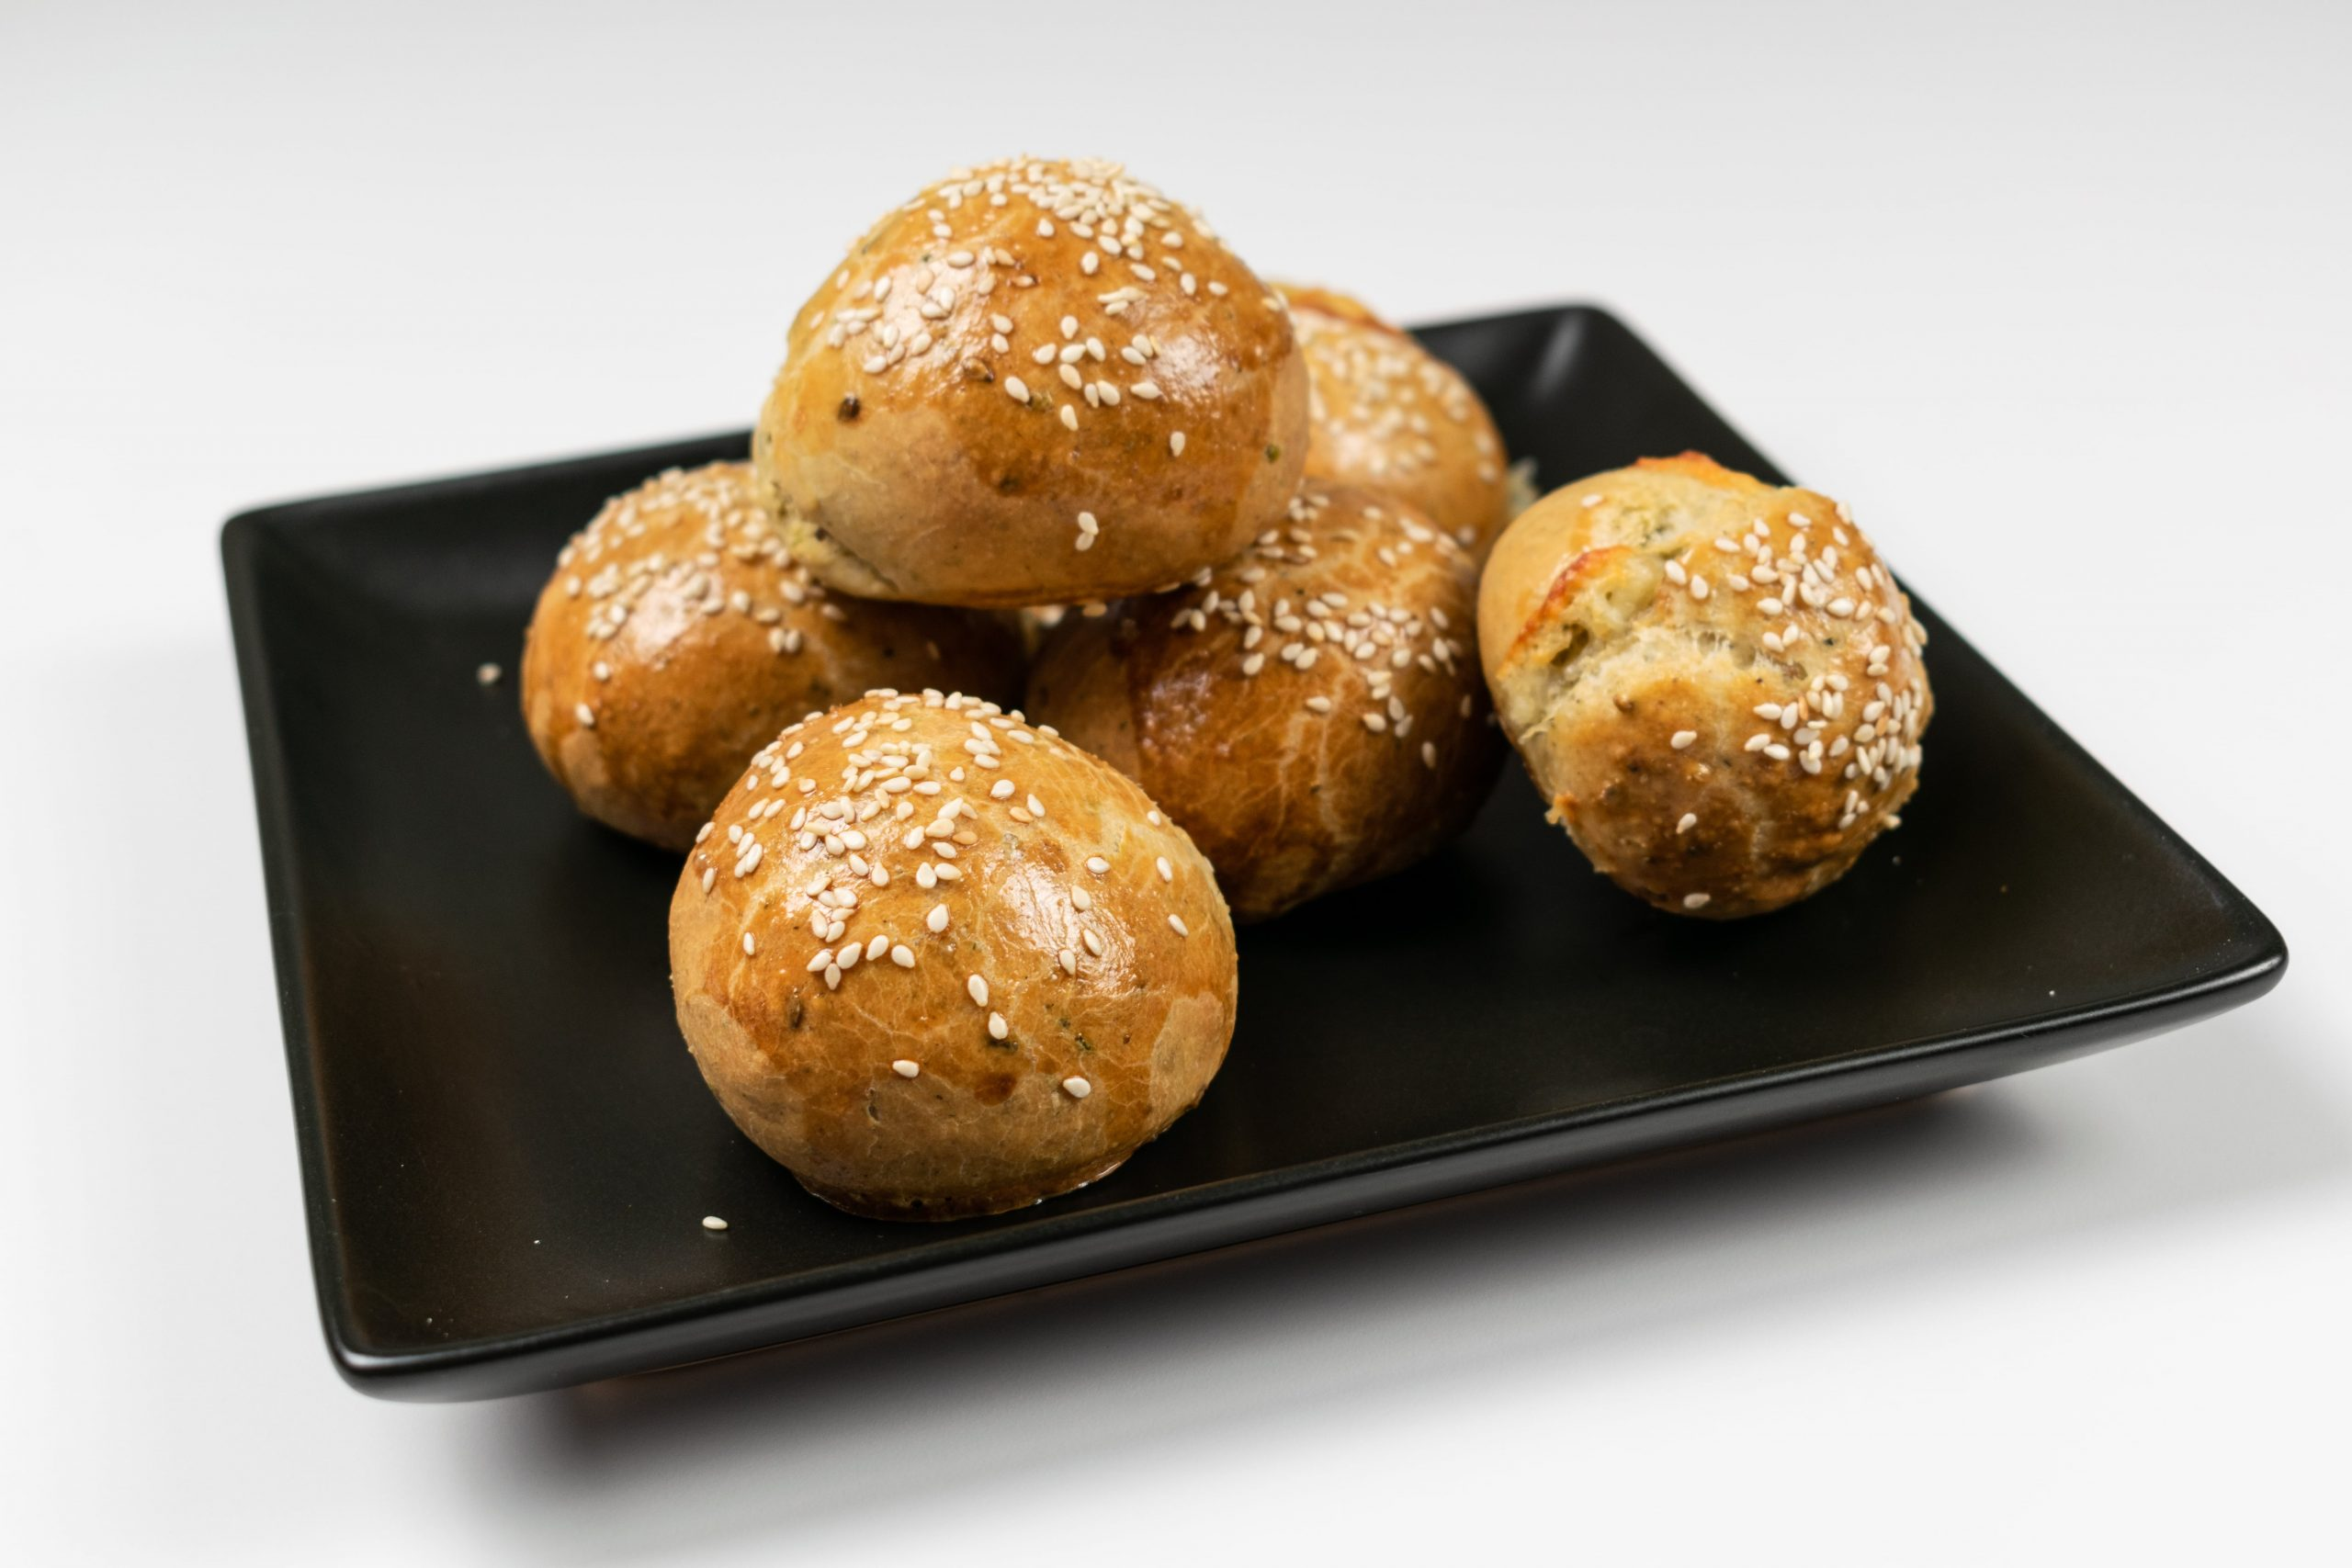 Cheese buns on black plate